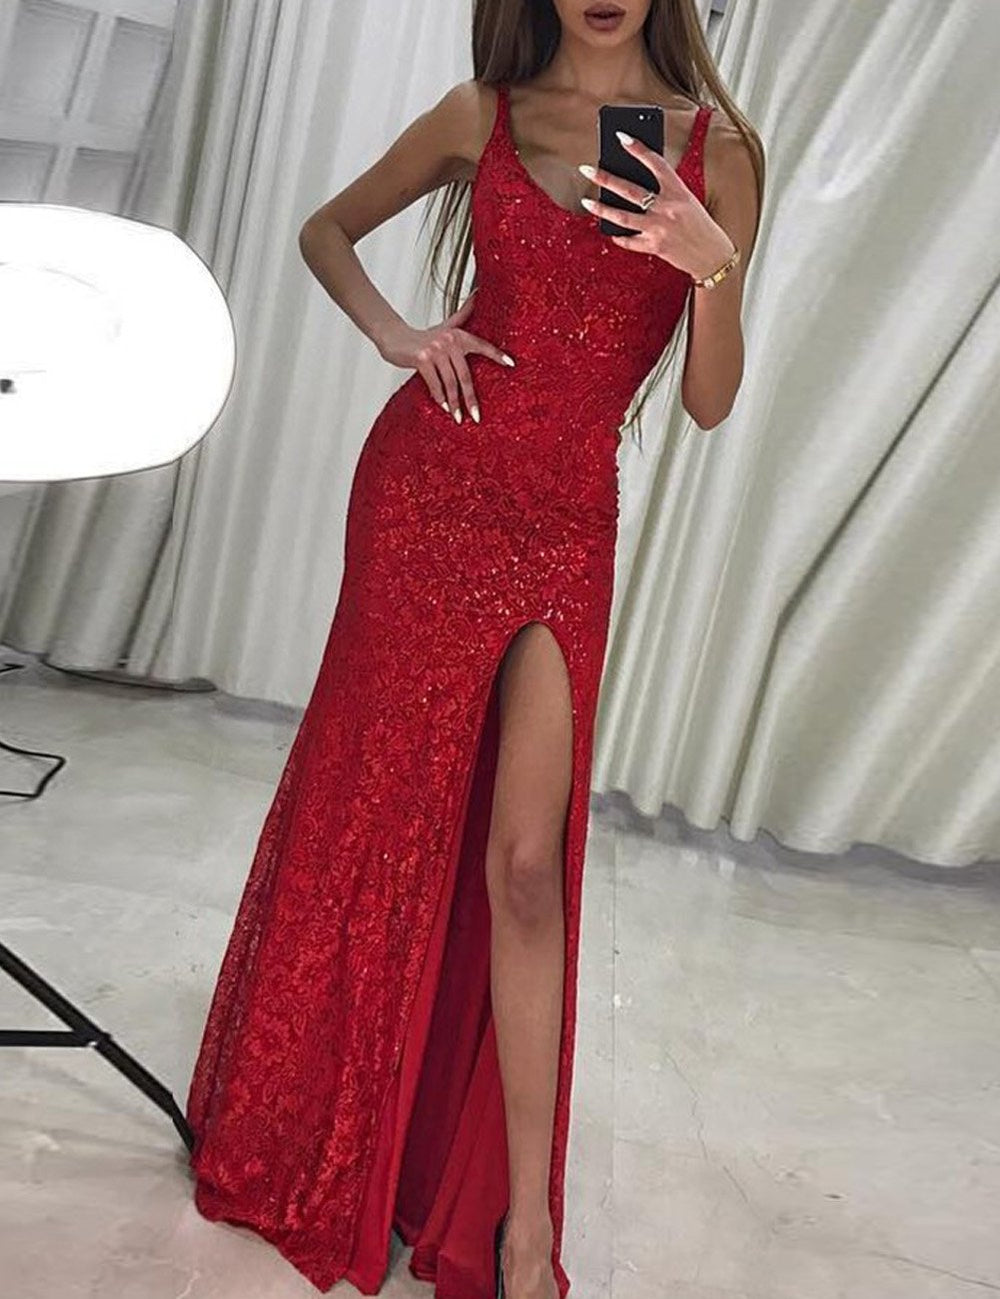 53f6314c89b3f Home Products Sleeveless Side High Slit Sequin Evening Party Gown Long  Dress. sexy prom dress